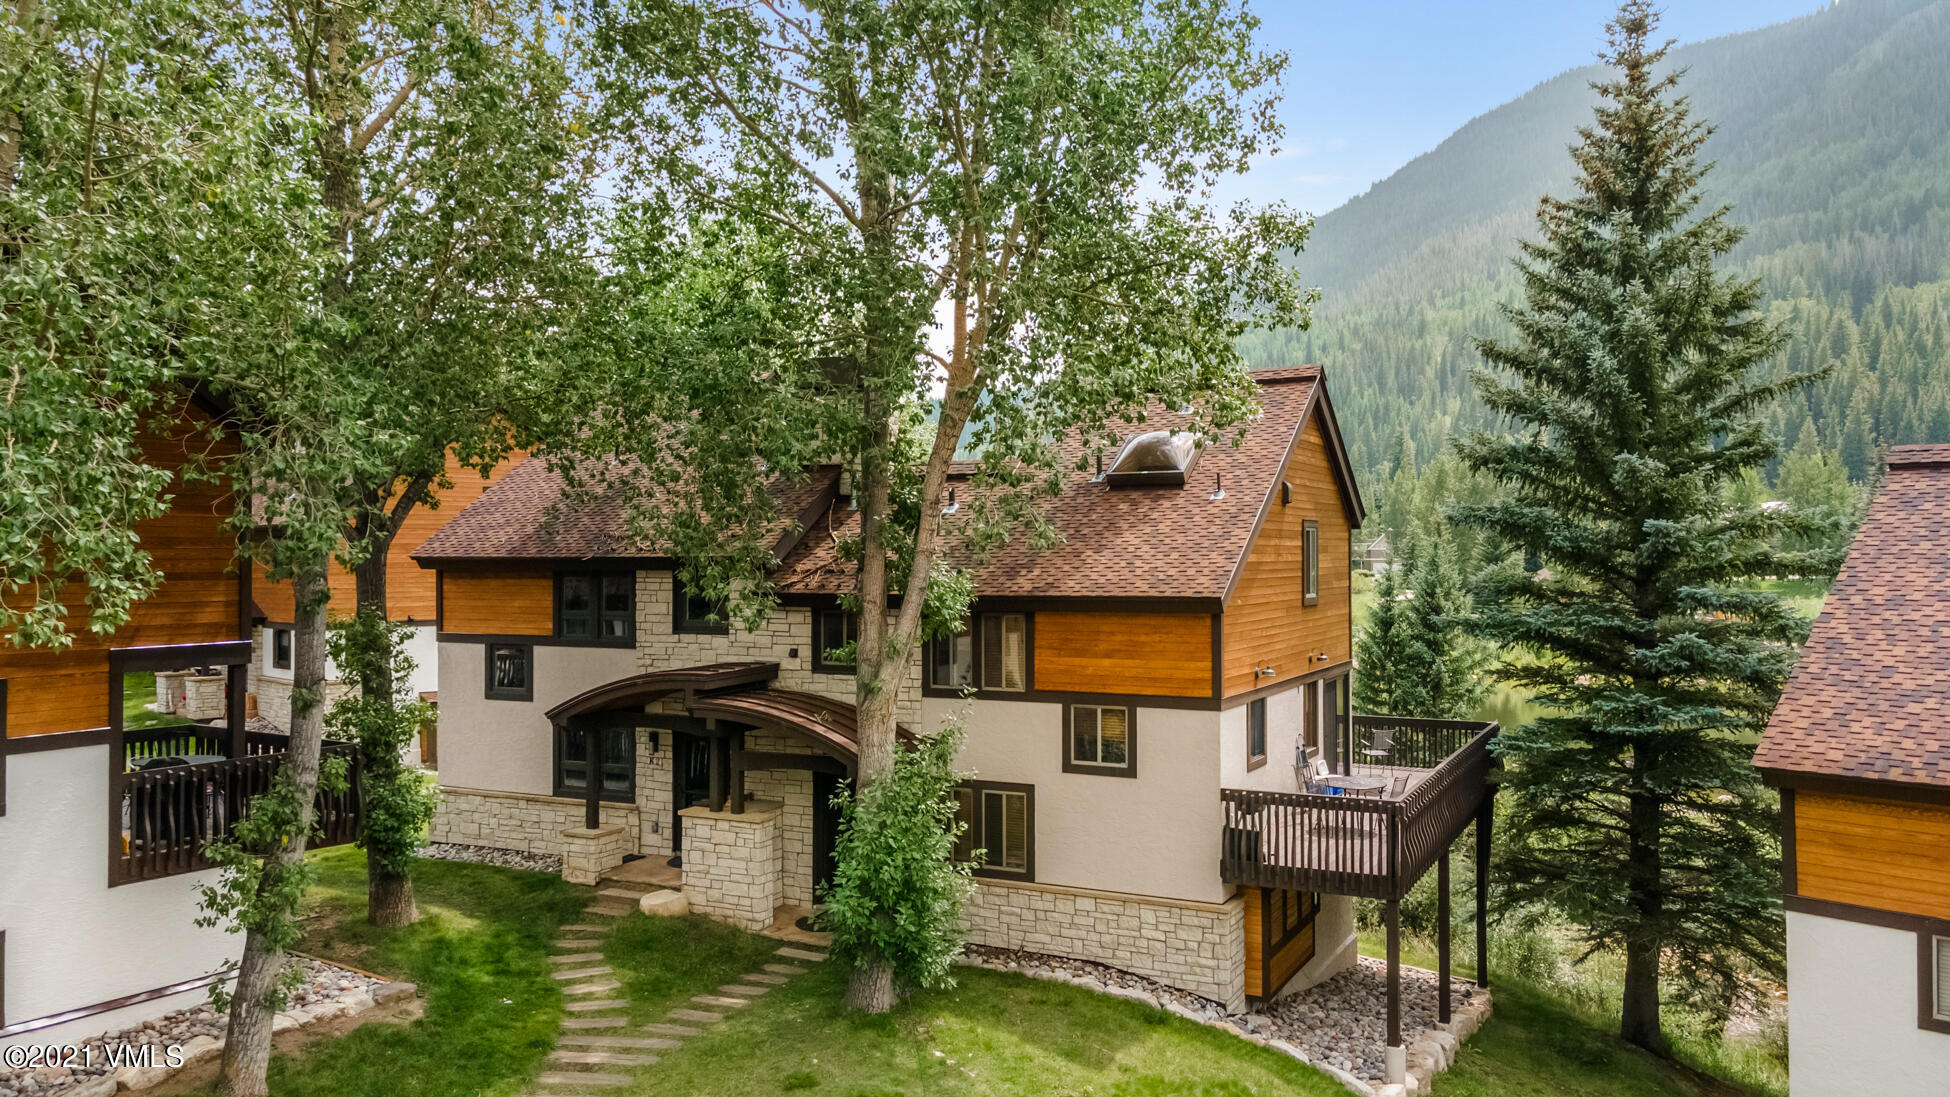 This 3-bedroom townhome enjoys an absolutely stunning location on Gore Creek offering unobstructed, sunny, southern views overlooking Bighorn Lake and Park. This unique, 5 half-level townhome is situated just steps from the Town of Vail free bus, making it convenient to access both Vail and Lionshead. You can drop your gear in the entry area after a day enjoying all that Vail has to offer before you head up to the main level where the living area offers vaulted ceilings with a skylight for natural sunlight, a wood burning fireplace, dining area, kitchen and a large deck. The beautifully renovated kitchen has tile flooring, cherry wood cabinets, granite countertops and stainless-steel appliances. The deck that sits off the dining area has new Trex decking and provides you with ONE-OF-A-KIND views. It is the perfect place to relax and enjoy your morning coffee and/or evening cocktails and barbeque while appreciating the beautiful East Vail setting. A laundry room is located on the 3rd half-level; while the master bedroom with vaulted ceilings and an ensuite bathroom with a jacuzzi tub and steam shower are located on the top level. A few steps down from the entry area are 2 additional bedrooms, each with ensuite baths, providing plenty of privacy for your family and guests. The lowest level offers a large owners storage closet as well as a crawlspace for all your mountain gear. The Vail Racquet Club is conveniently located near Bighorn Park, which sits alongside Gore Creek making it an ideal setting for families and pets to enjoy the surrounding mountains. As well, the Vail Racquet Club offers a year-round outdoor swimming pool, 2 hot tubs, health club/fitness center, yoga/Pilates rooms, tennis/pickleball courts, on-site restaurant/bar, sports shop and front desk. East Vail lends itself to a wonderful mountain atmosphere with easy walking, hiking and biking trails. Vail Village and Lionshead are a quick drive or bike ride as well as being easily accessed via the bus.